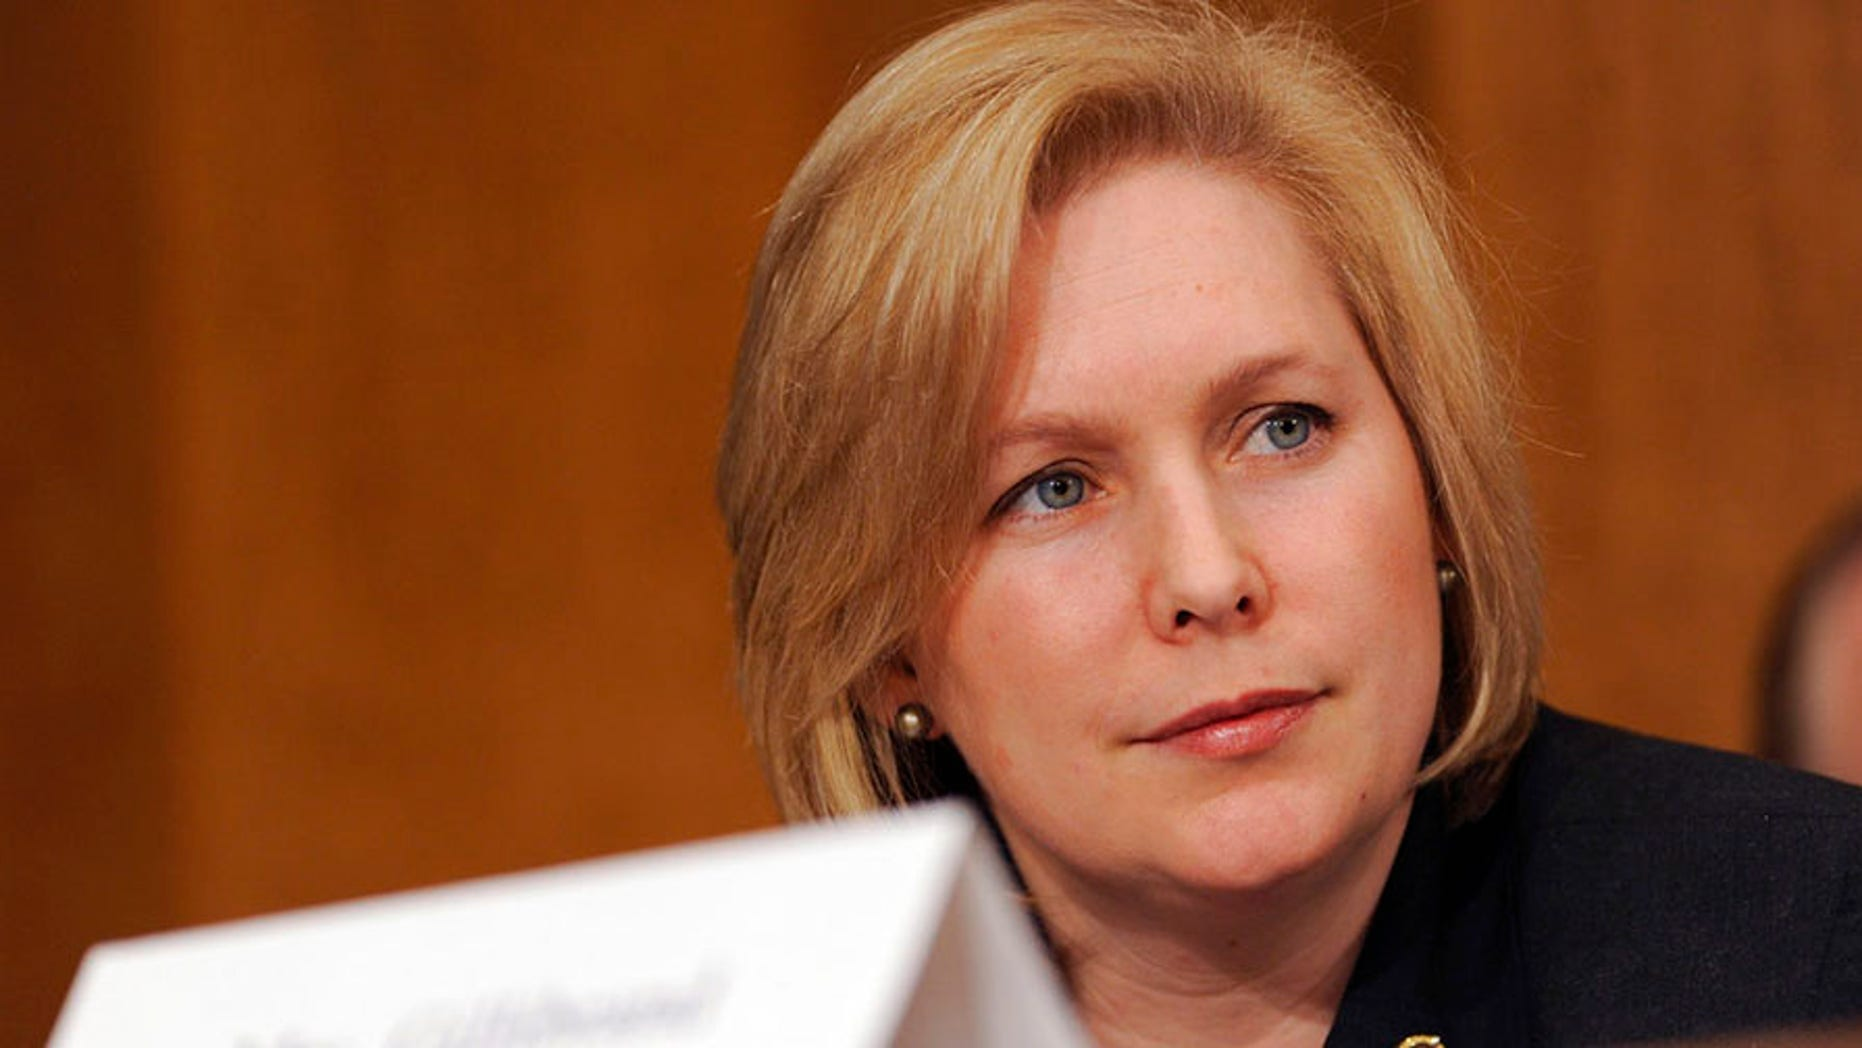 Sen. Kirsten Gillibrand, D-N.Y., has not mentioned the Iran protests.